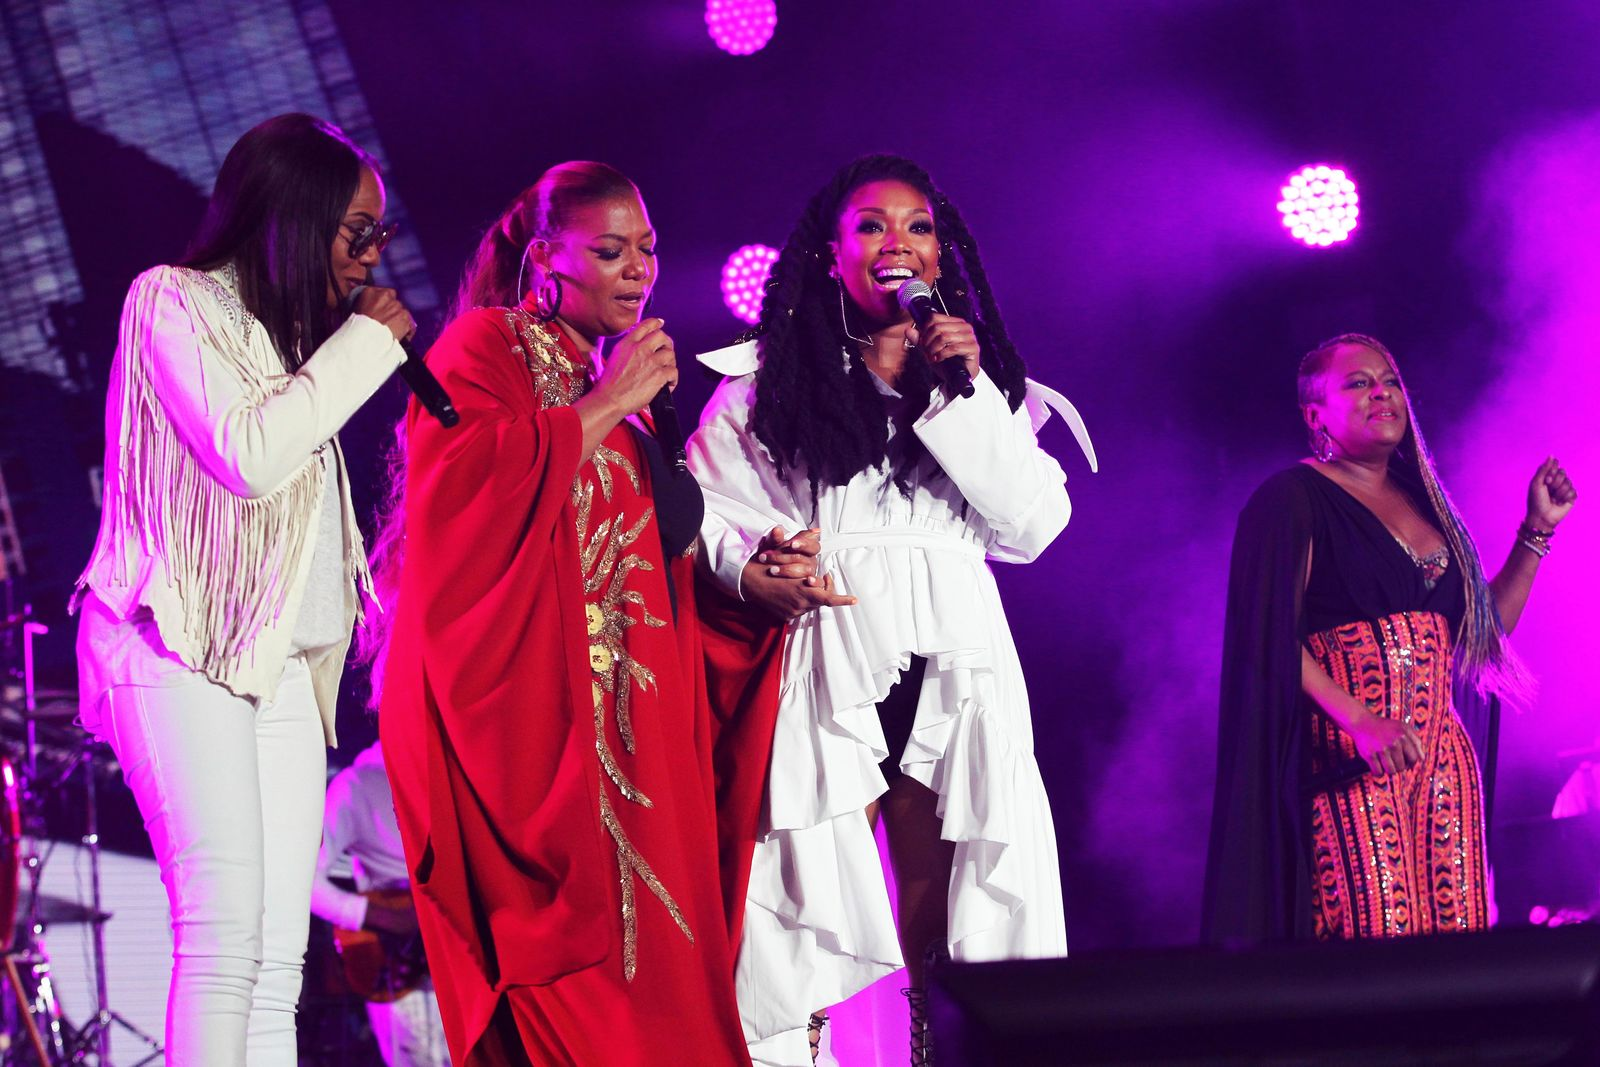 Queen Latifah, MC Lyte, Brandy, and Yo-Yo perform at the 2018 Essence Festival at the Mercedes-Benz Superdome on Saturday, July 7, 2018, in New Orleans. (Photo by Donald Traill/Invision/AP)